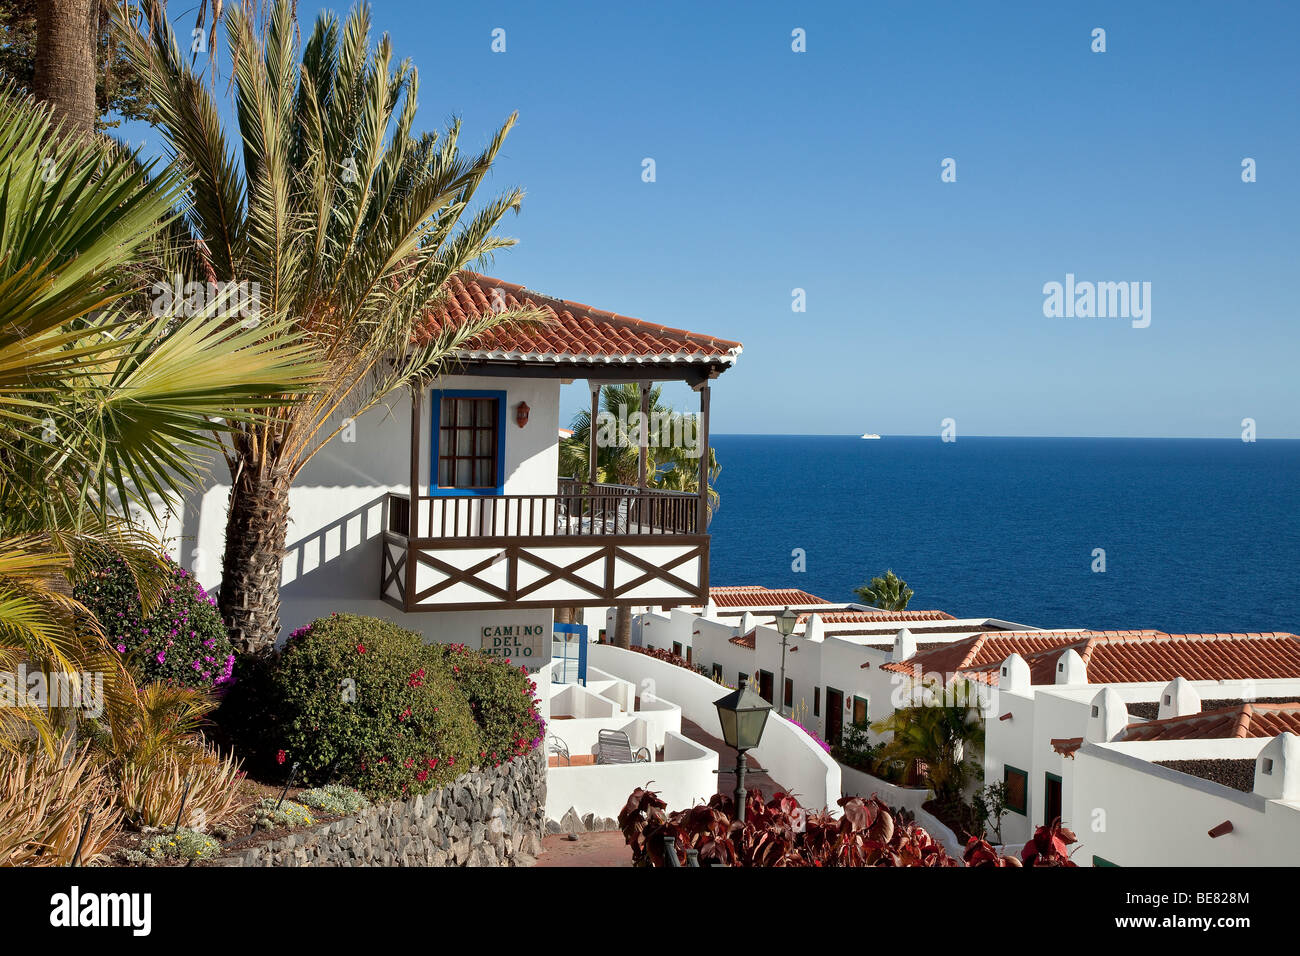 The Jardin Tecina Hotel with sea view in the sunlight, Playa de Santiago, La Gomera, Canary Islands, Spain, Europe - Stock Image